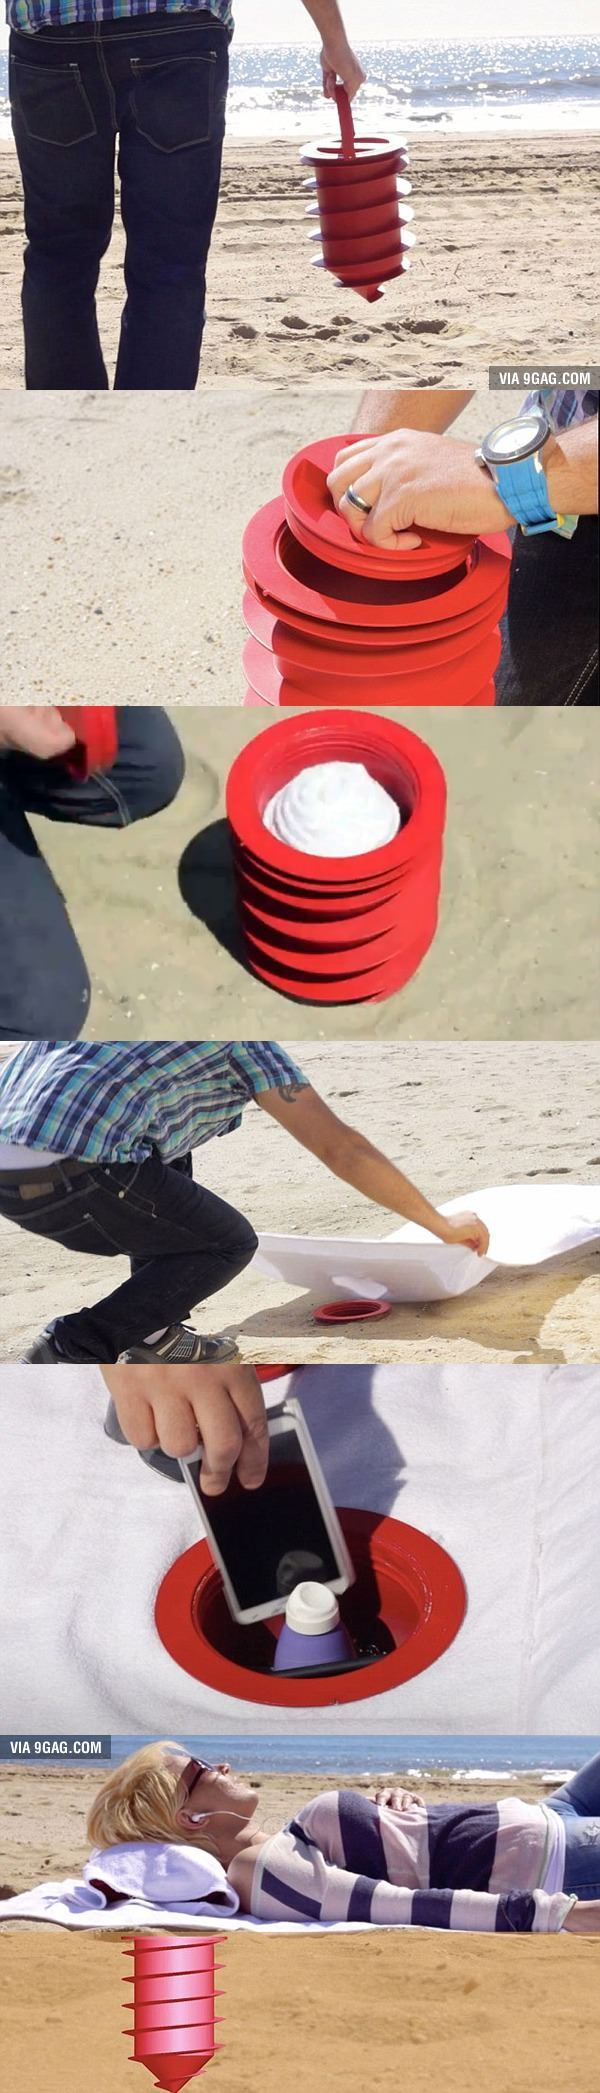 Great item to stash your valuables when at the beach! #camping #outdoors / TechNews24h.com